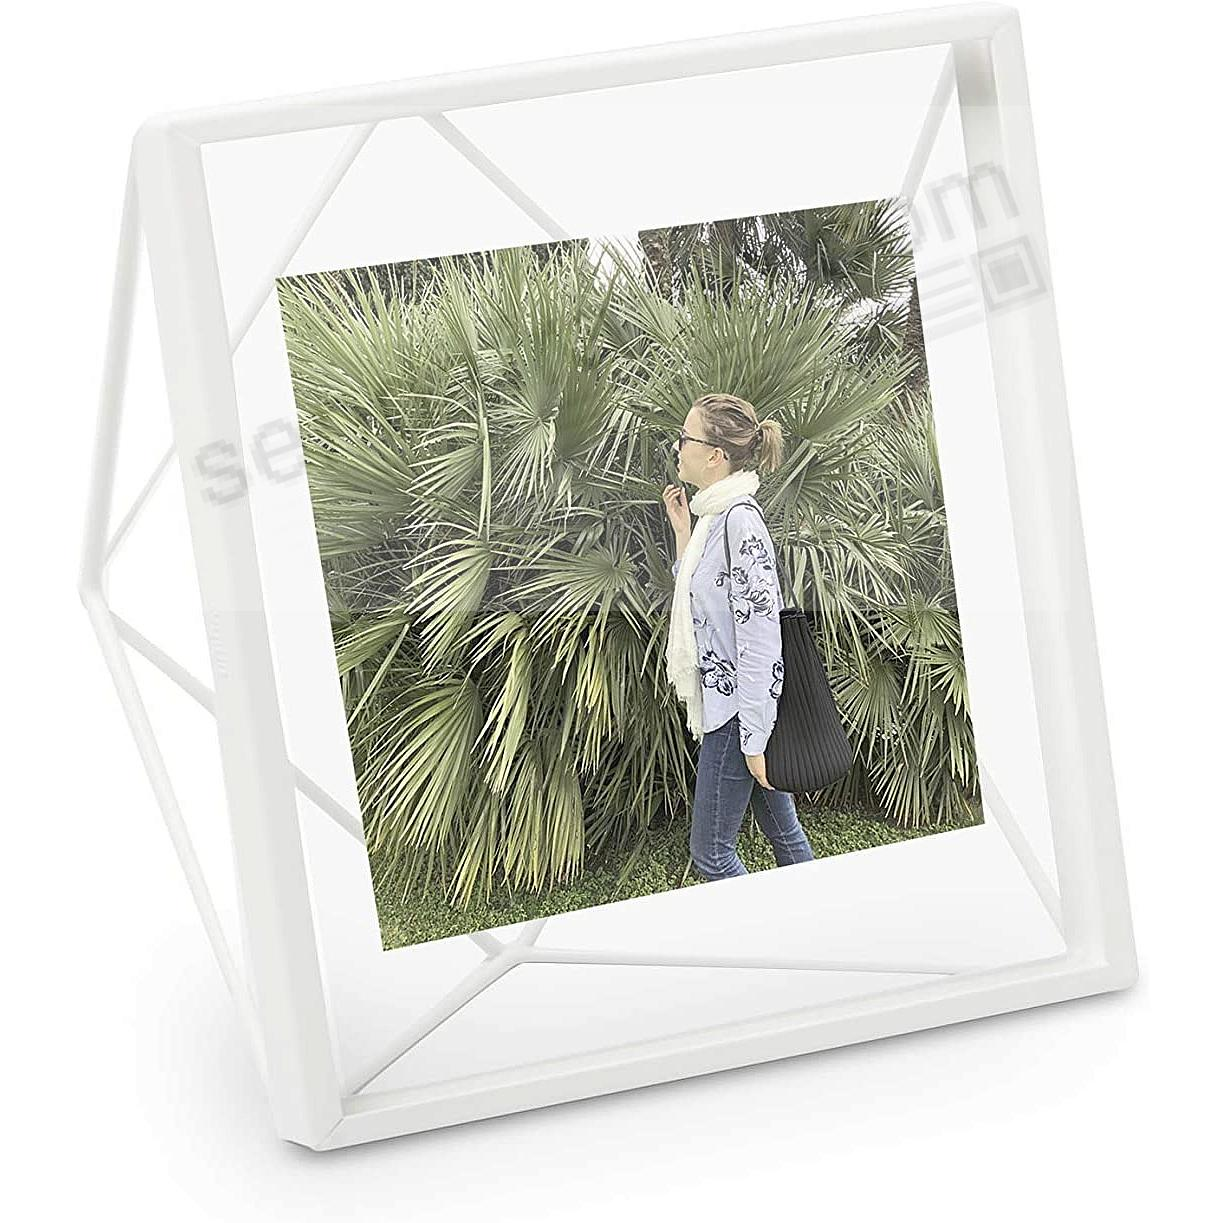 The Original PRISMA Photo Display White 4x4 frame by Umbra®